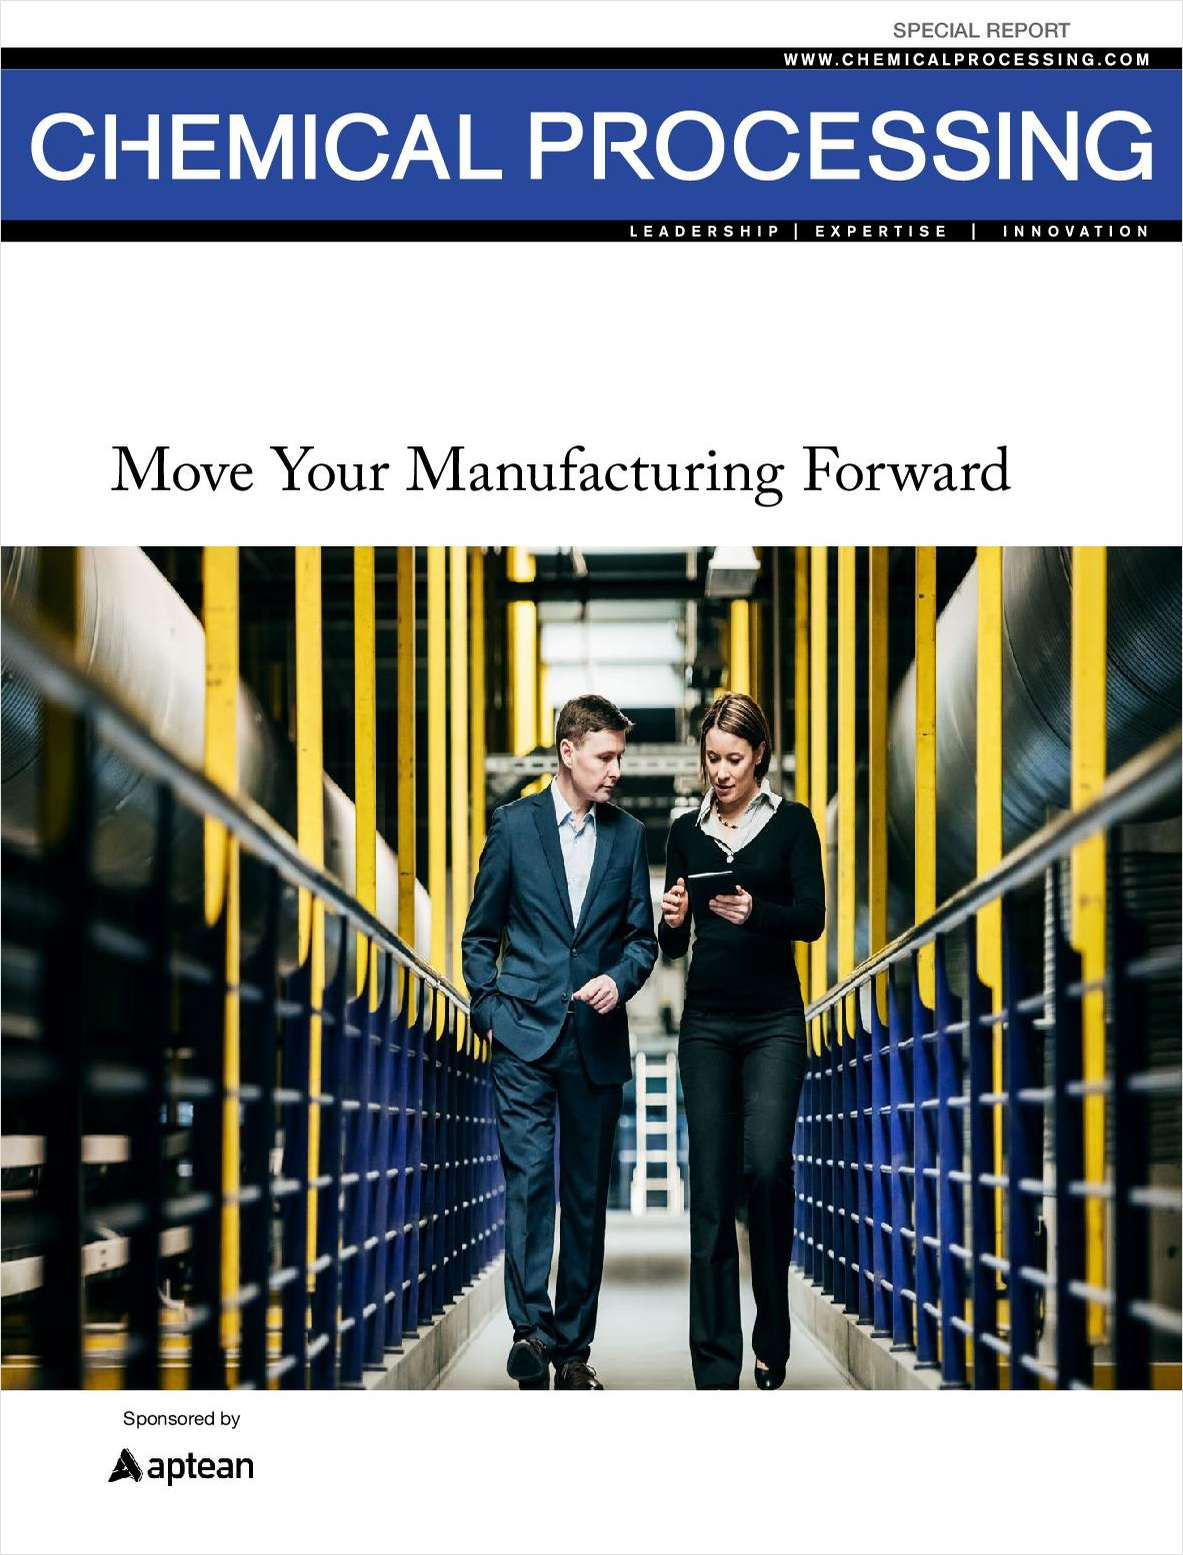 Special Report: Move Your Manufacturing Forward